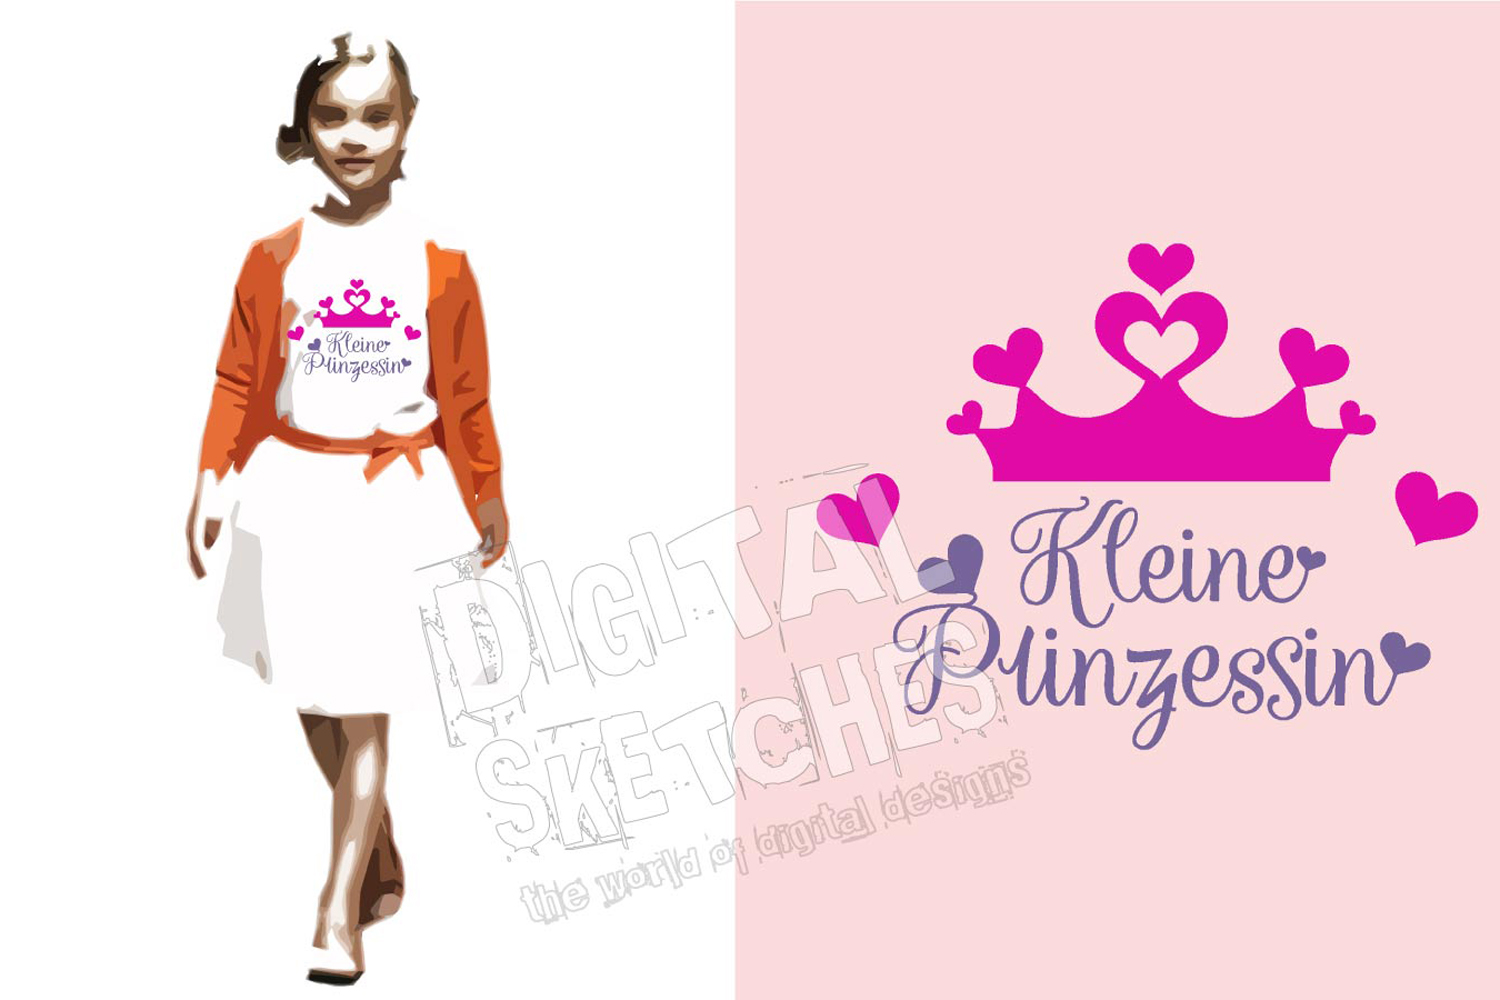 Crown Prinzessin Cut File Vector Graphics Illustration example image 1